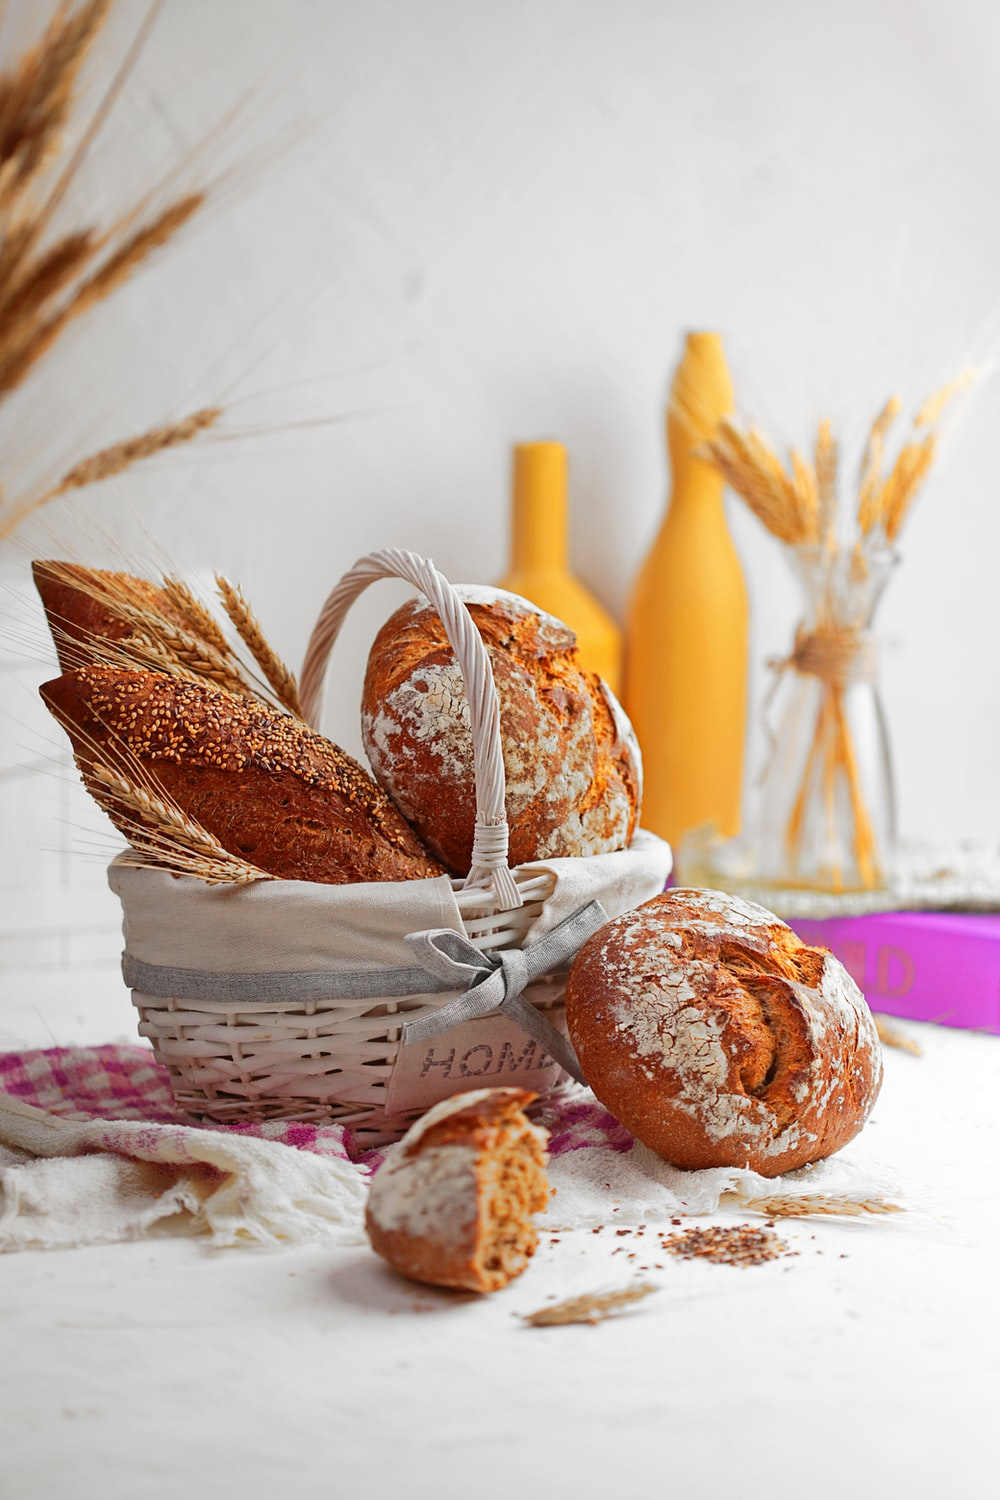 brown and white doughnuts on white basket